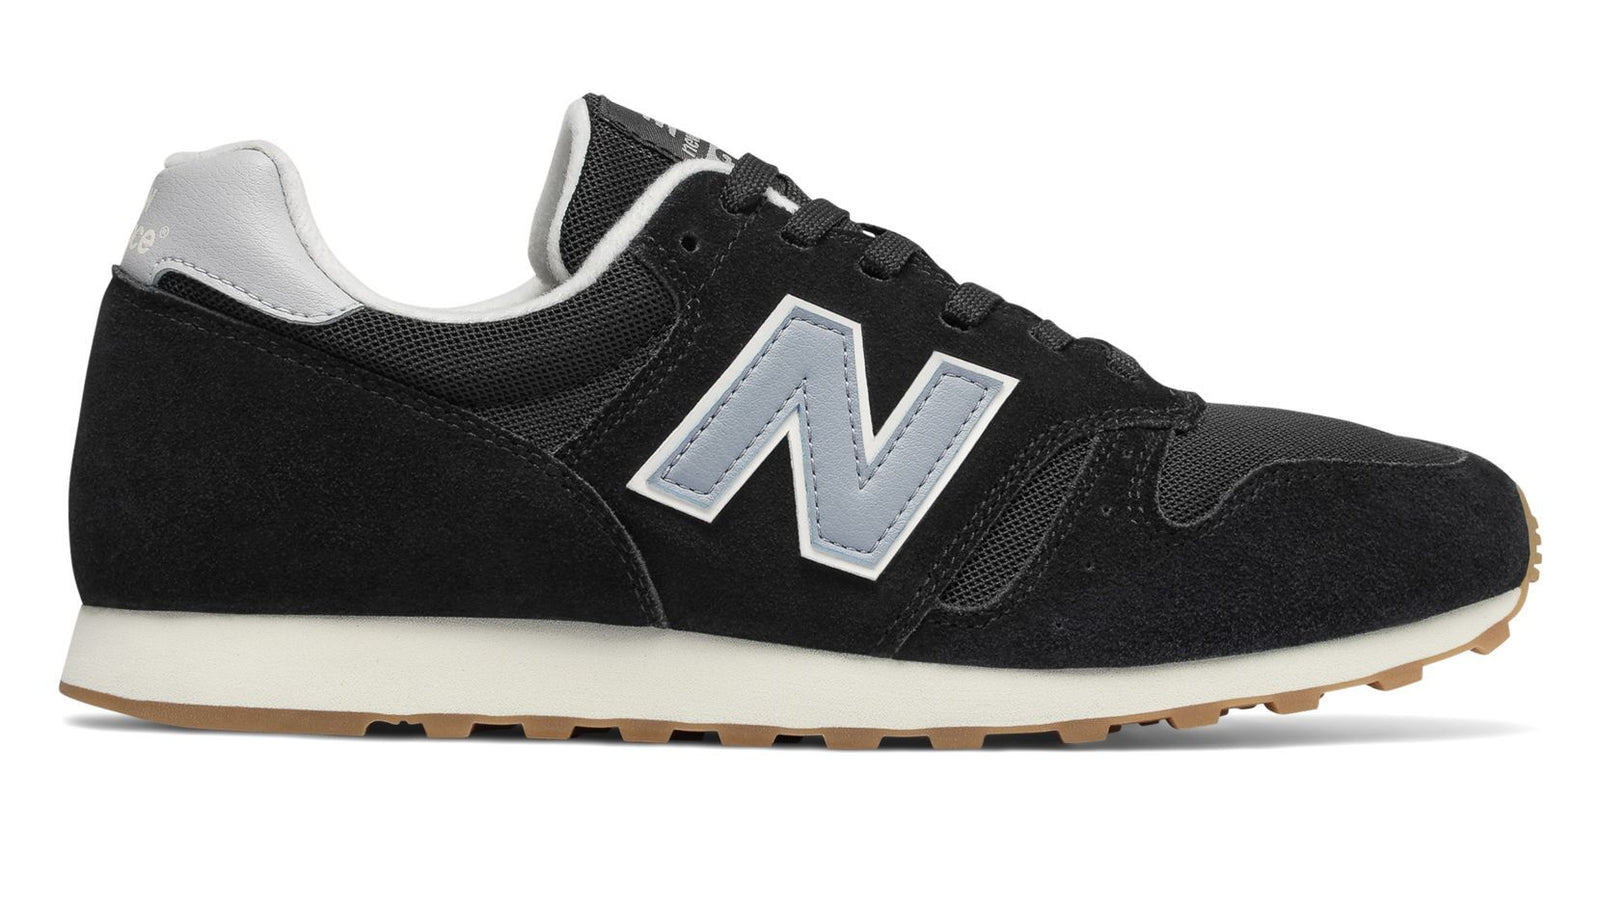 New Balance ML373-KBG in Black / Grey